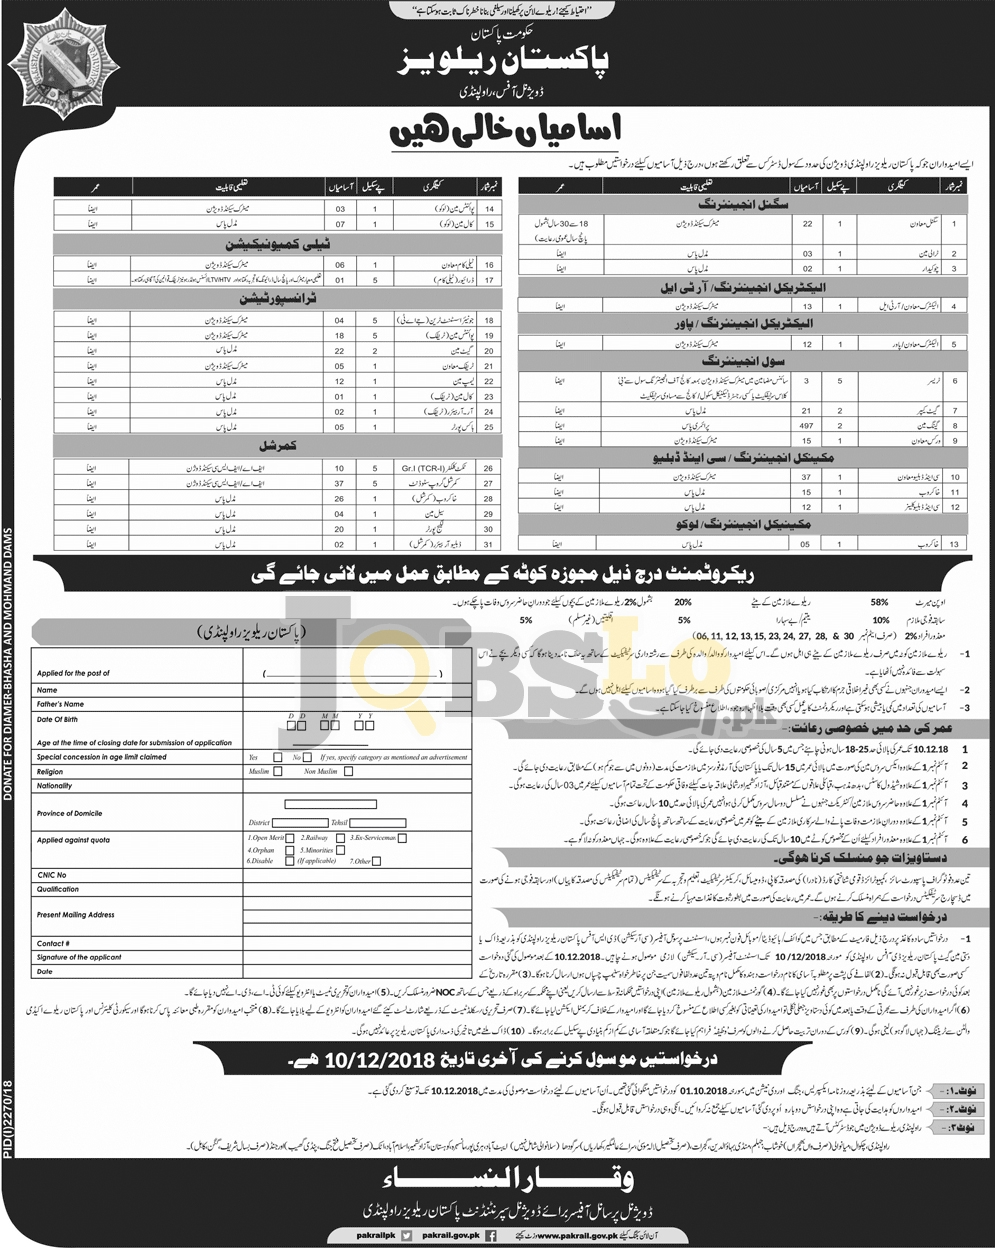 Govt of Pakistan Railways Jobs 2018 Rawalpindi Division Advertisement